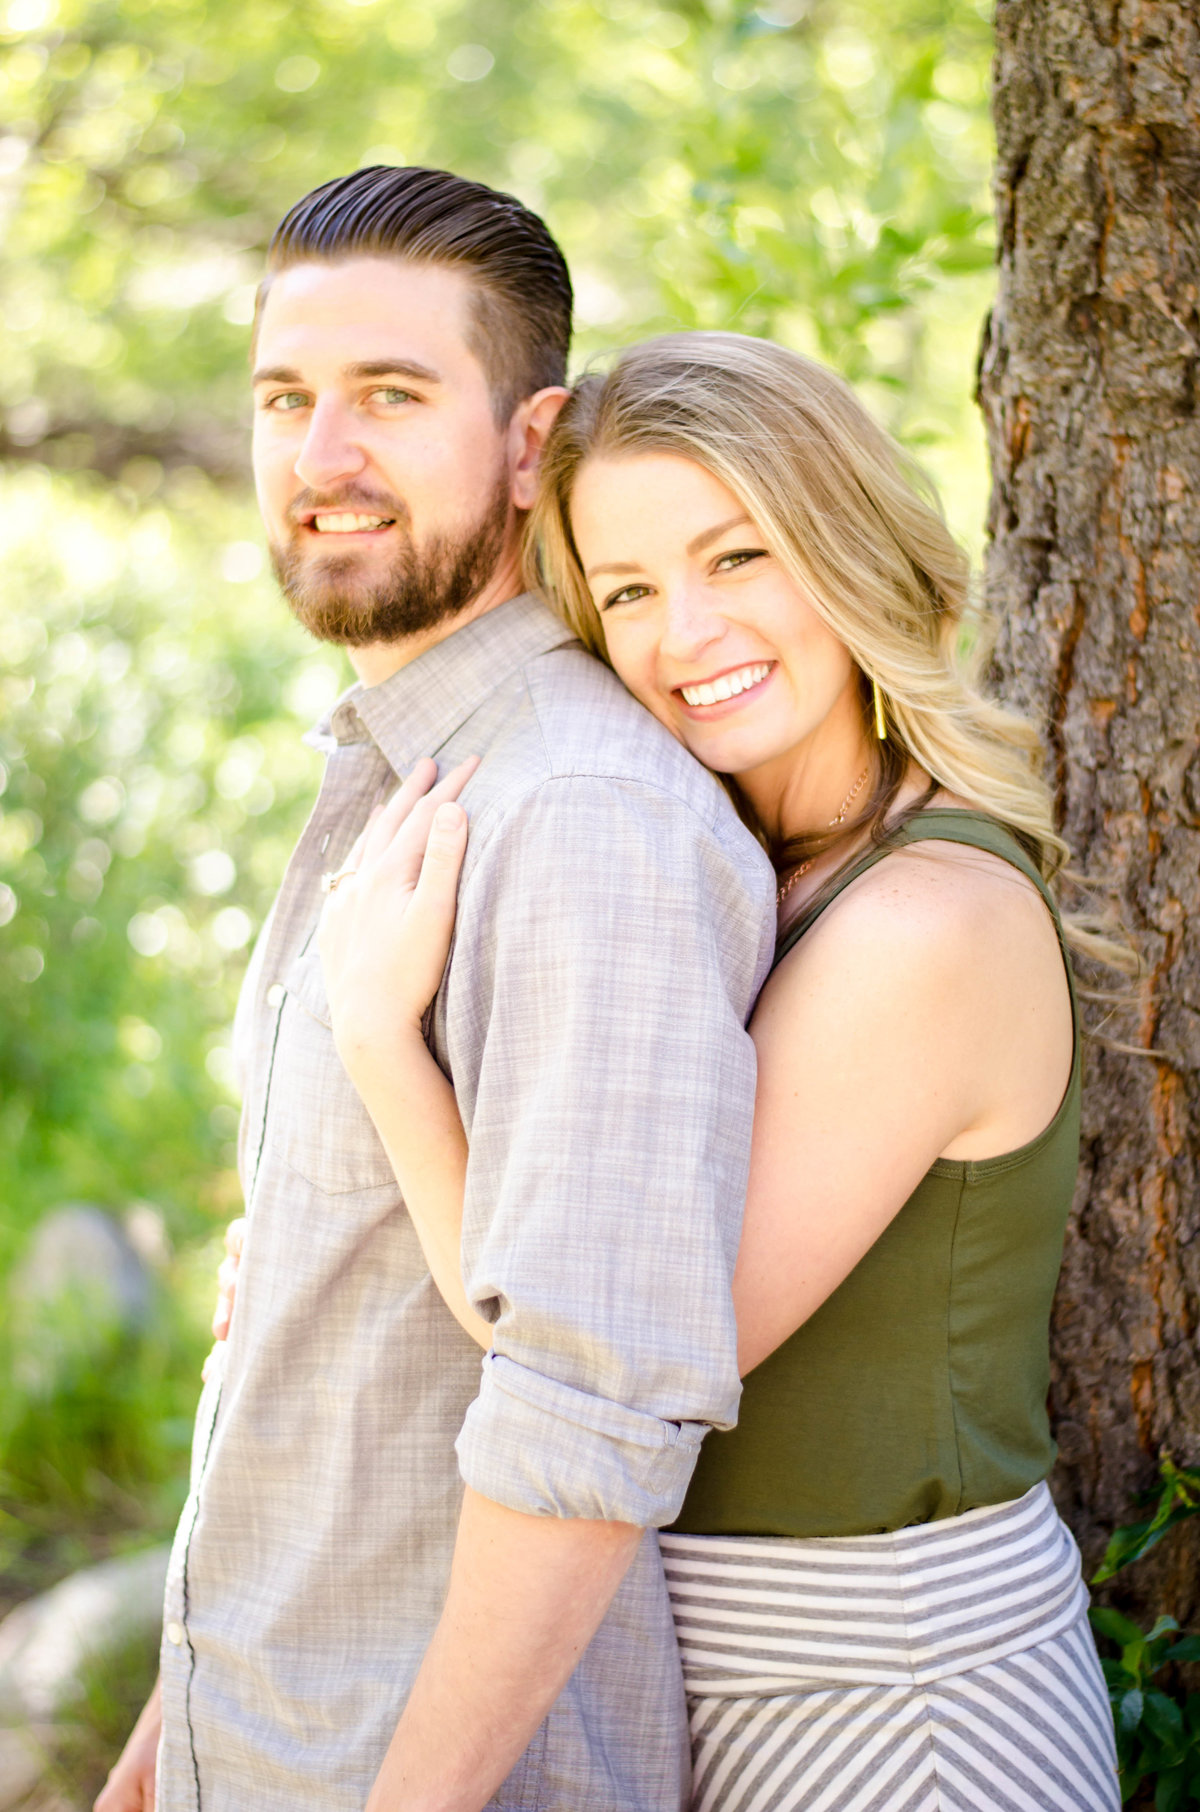 2017-06-04 Ashley+Jordan+Engagment+Boulder+CO (32 of 55)